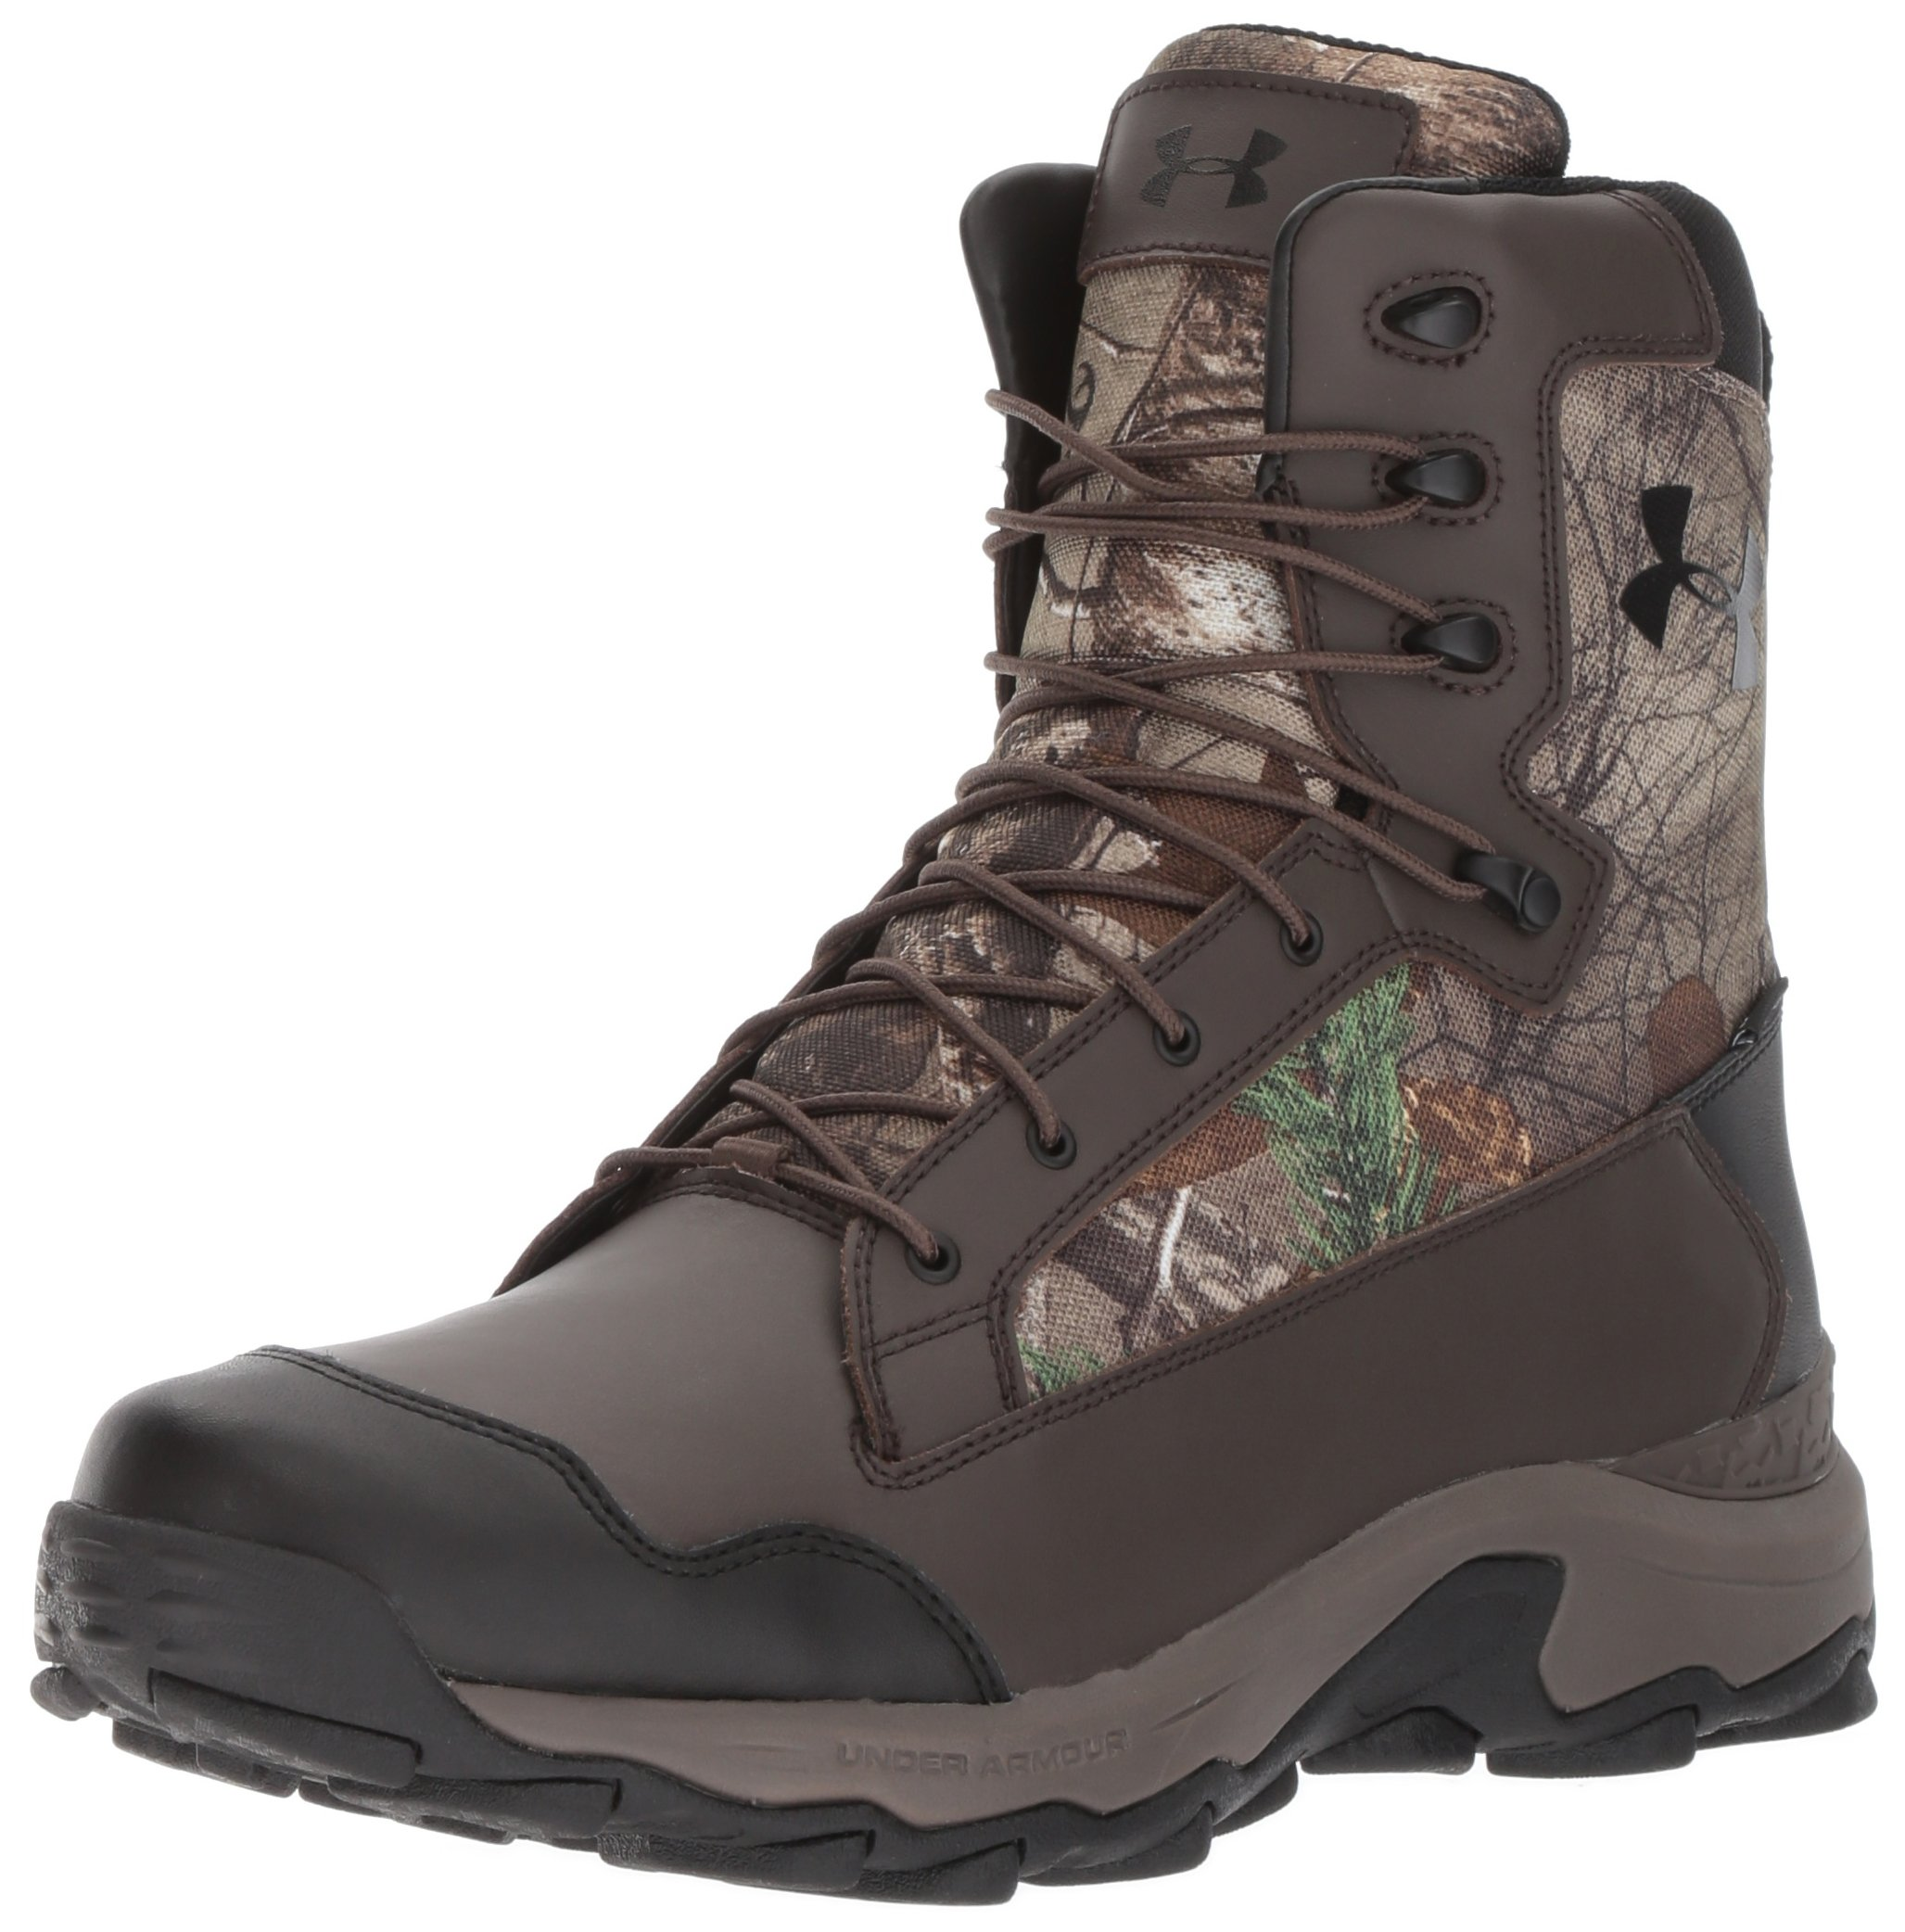 Under Armour Men's Tanger Waterproof Ankle Boot, Realtree Ap-Xtra (946)/Maverick Brown, 9